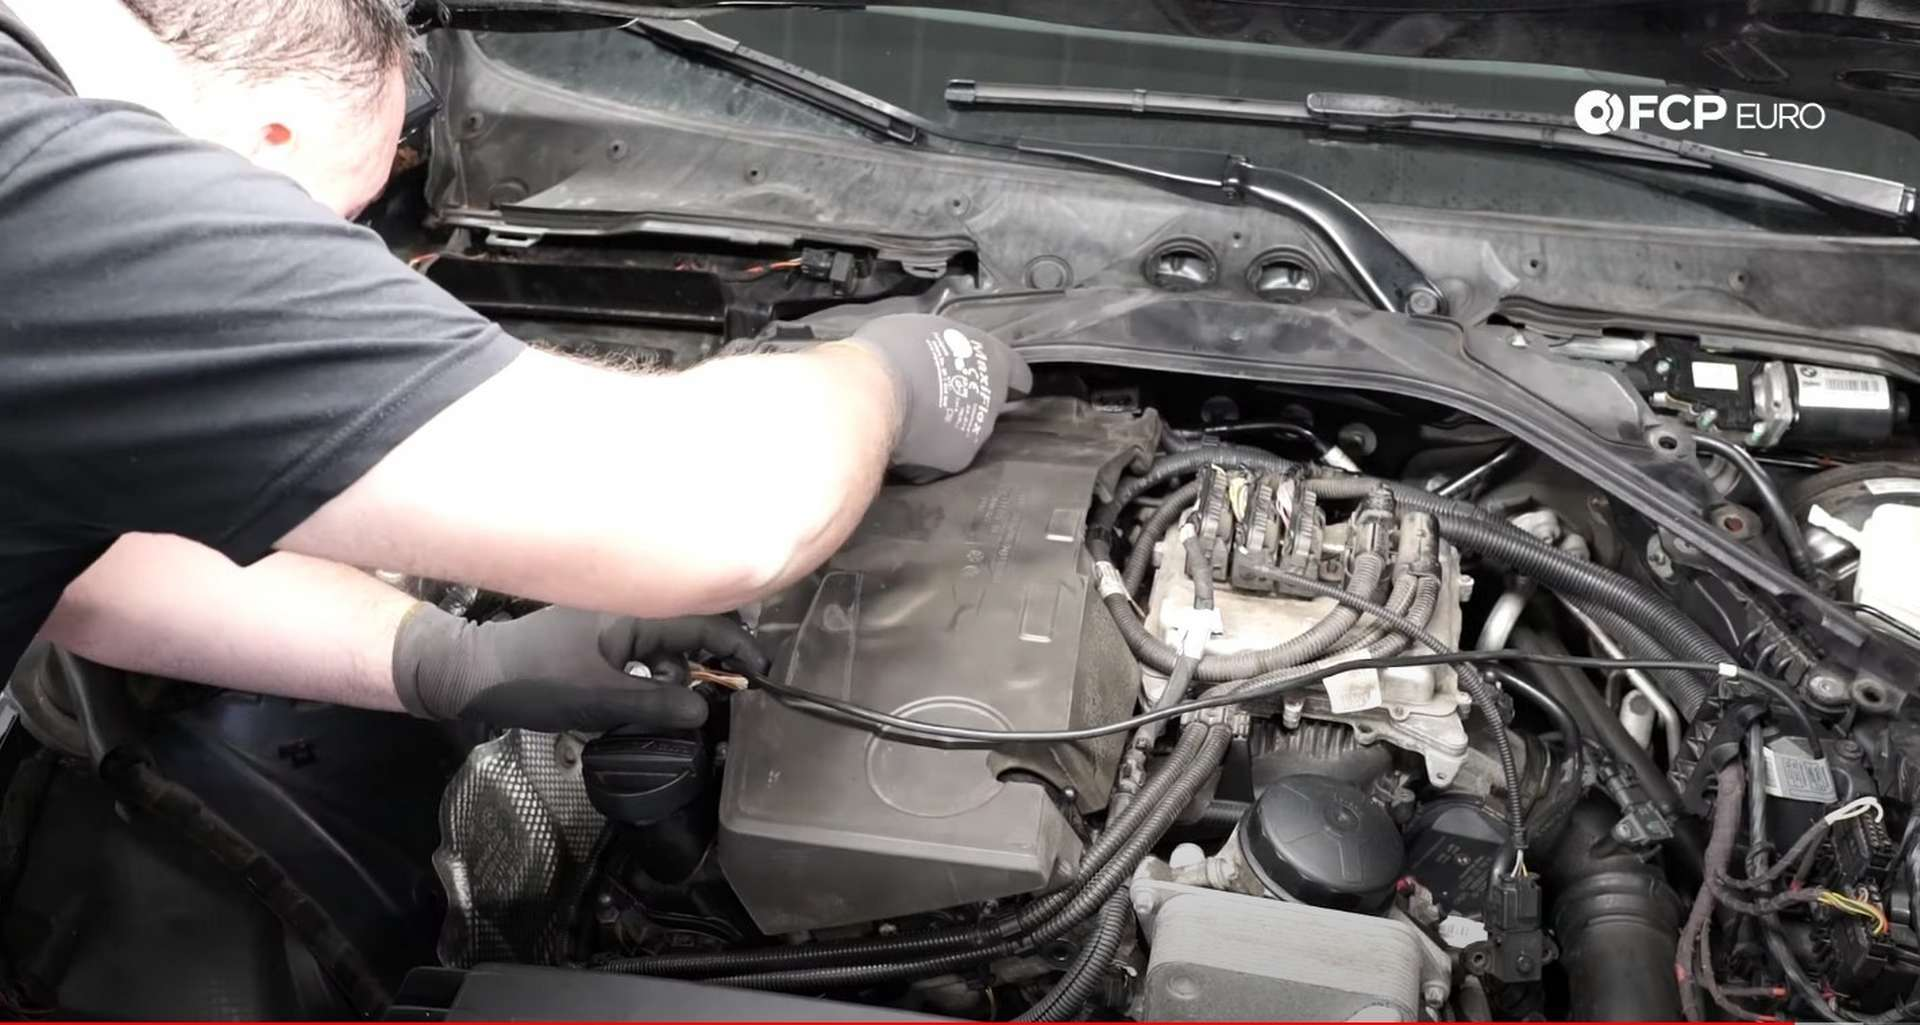 40-DIY-BMW-F30-Valve-Cover-Replacement_Refitting-Plastics